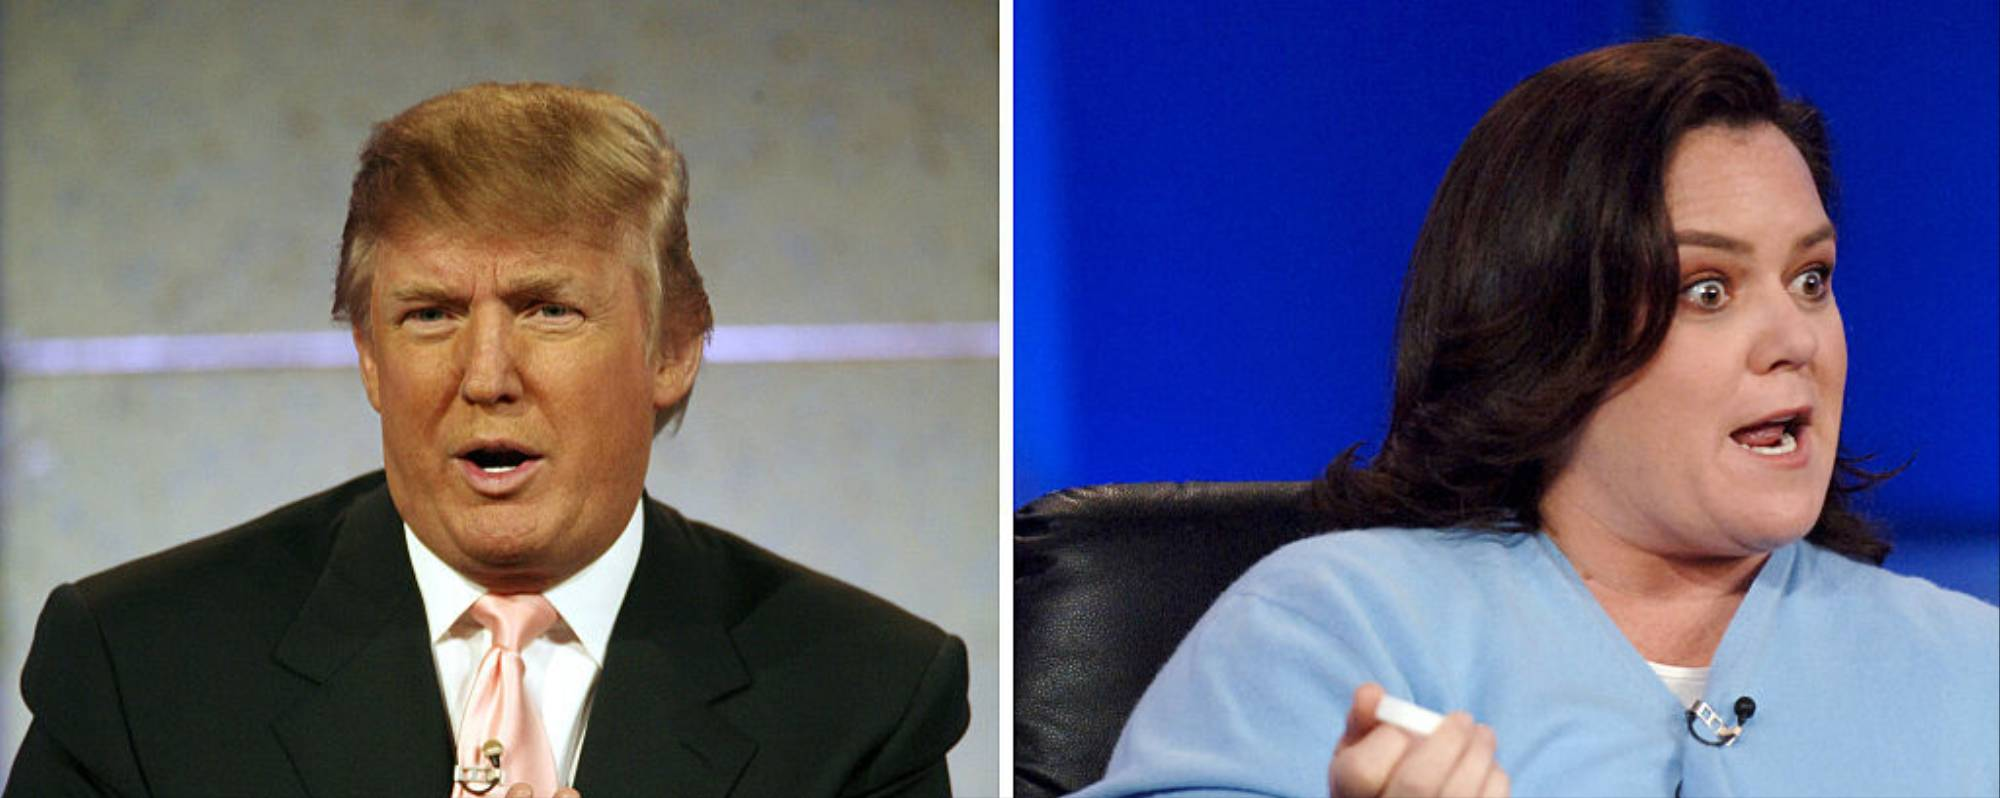 Inside Donald Trump's Decade-Long Feud with Rosie O'Donnell